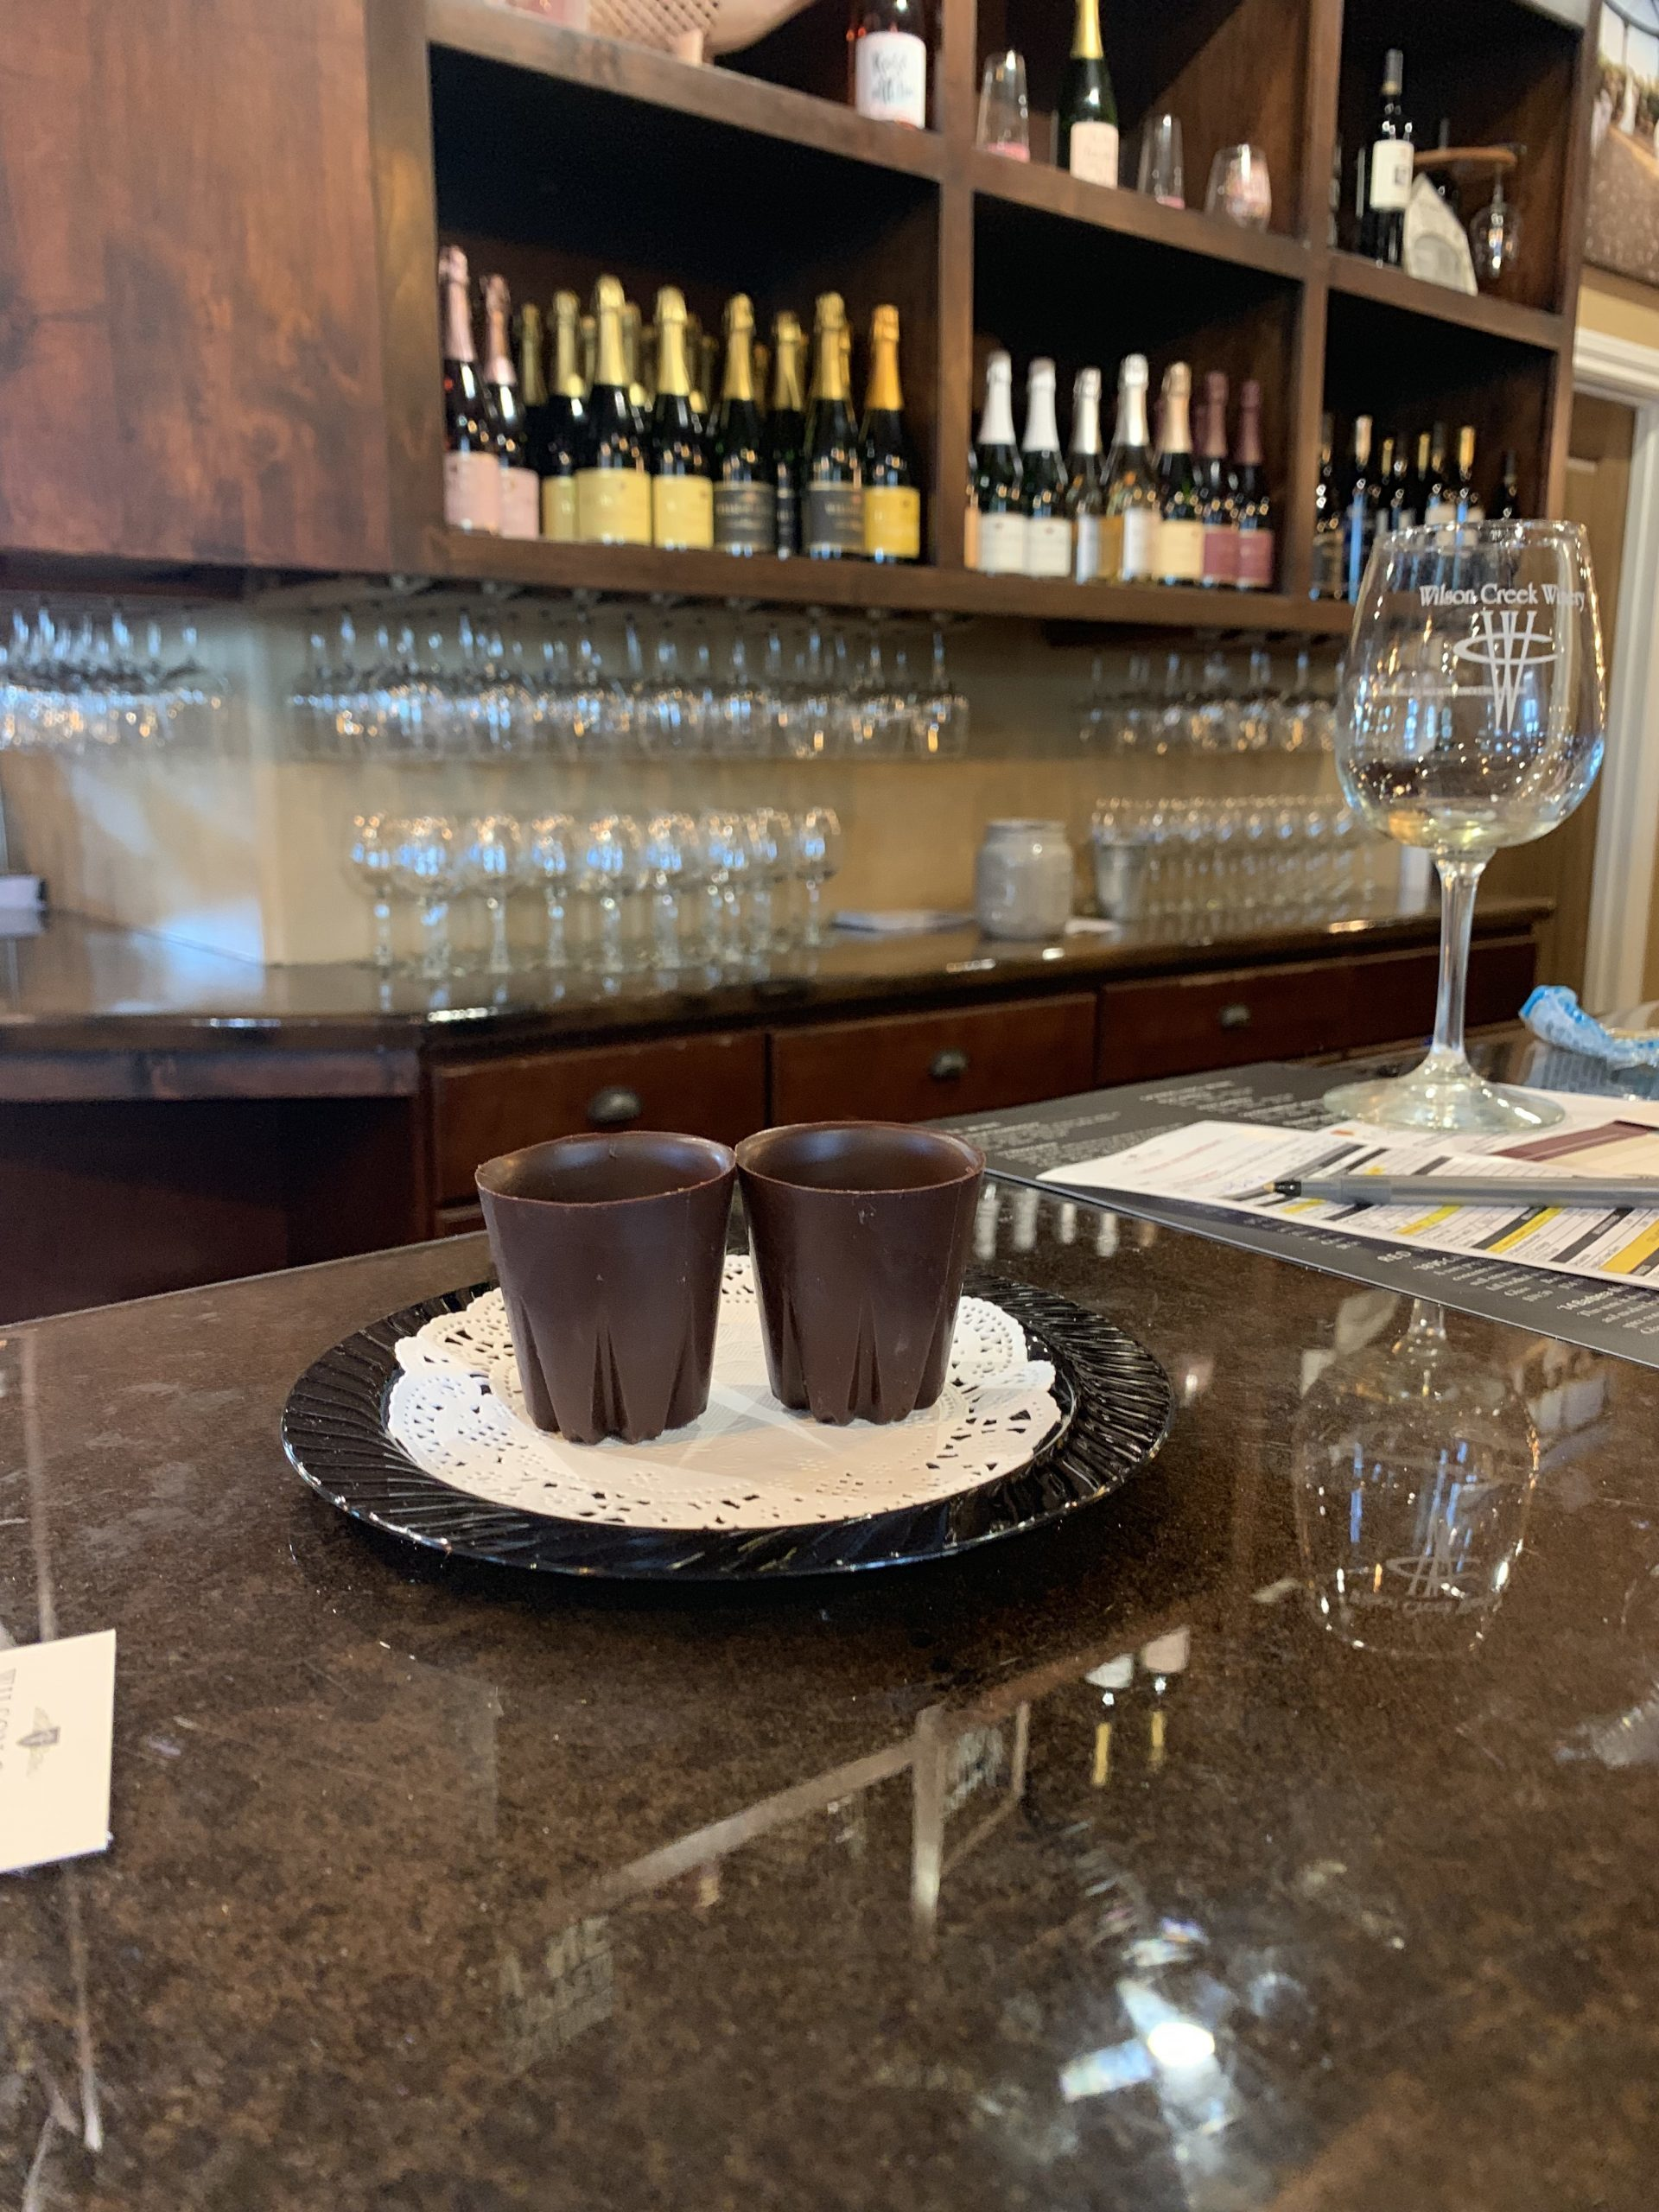 Chocolate glasses at the Wilson Creek Winery